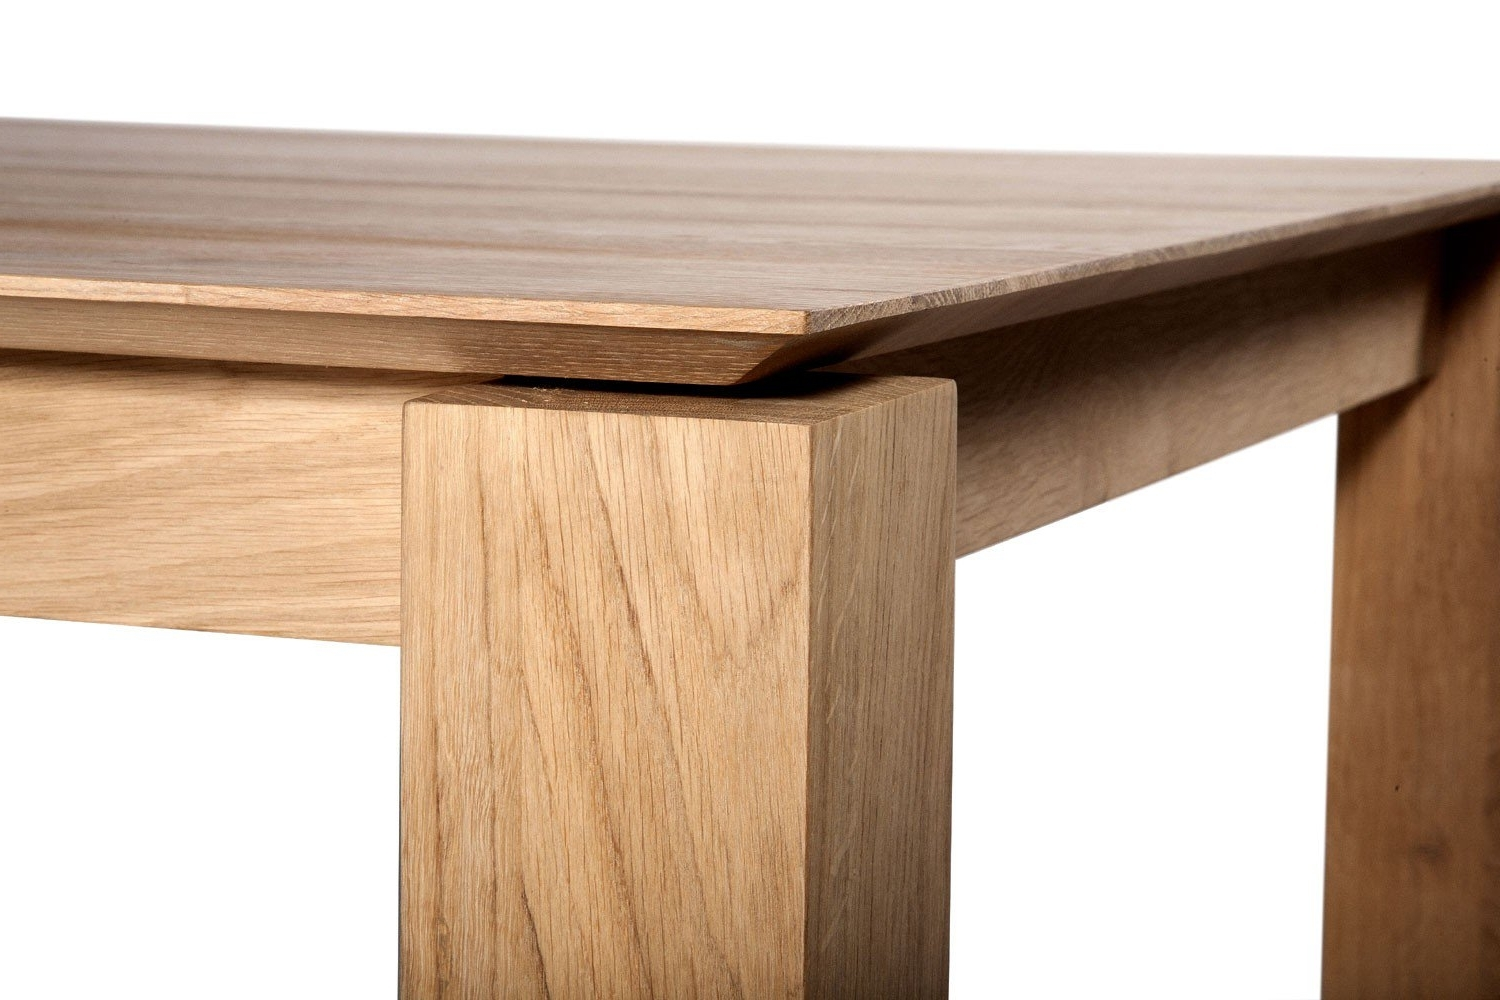 Oak Dining Furniture Intended For Famous Ethnicraft Slice Oak Dining Tables (View 6 of 25)